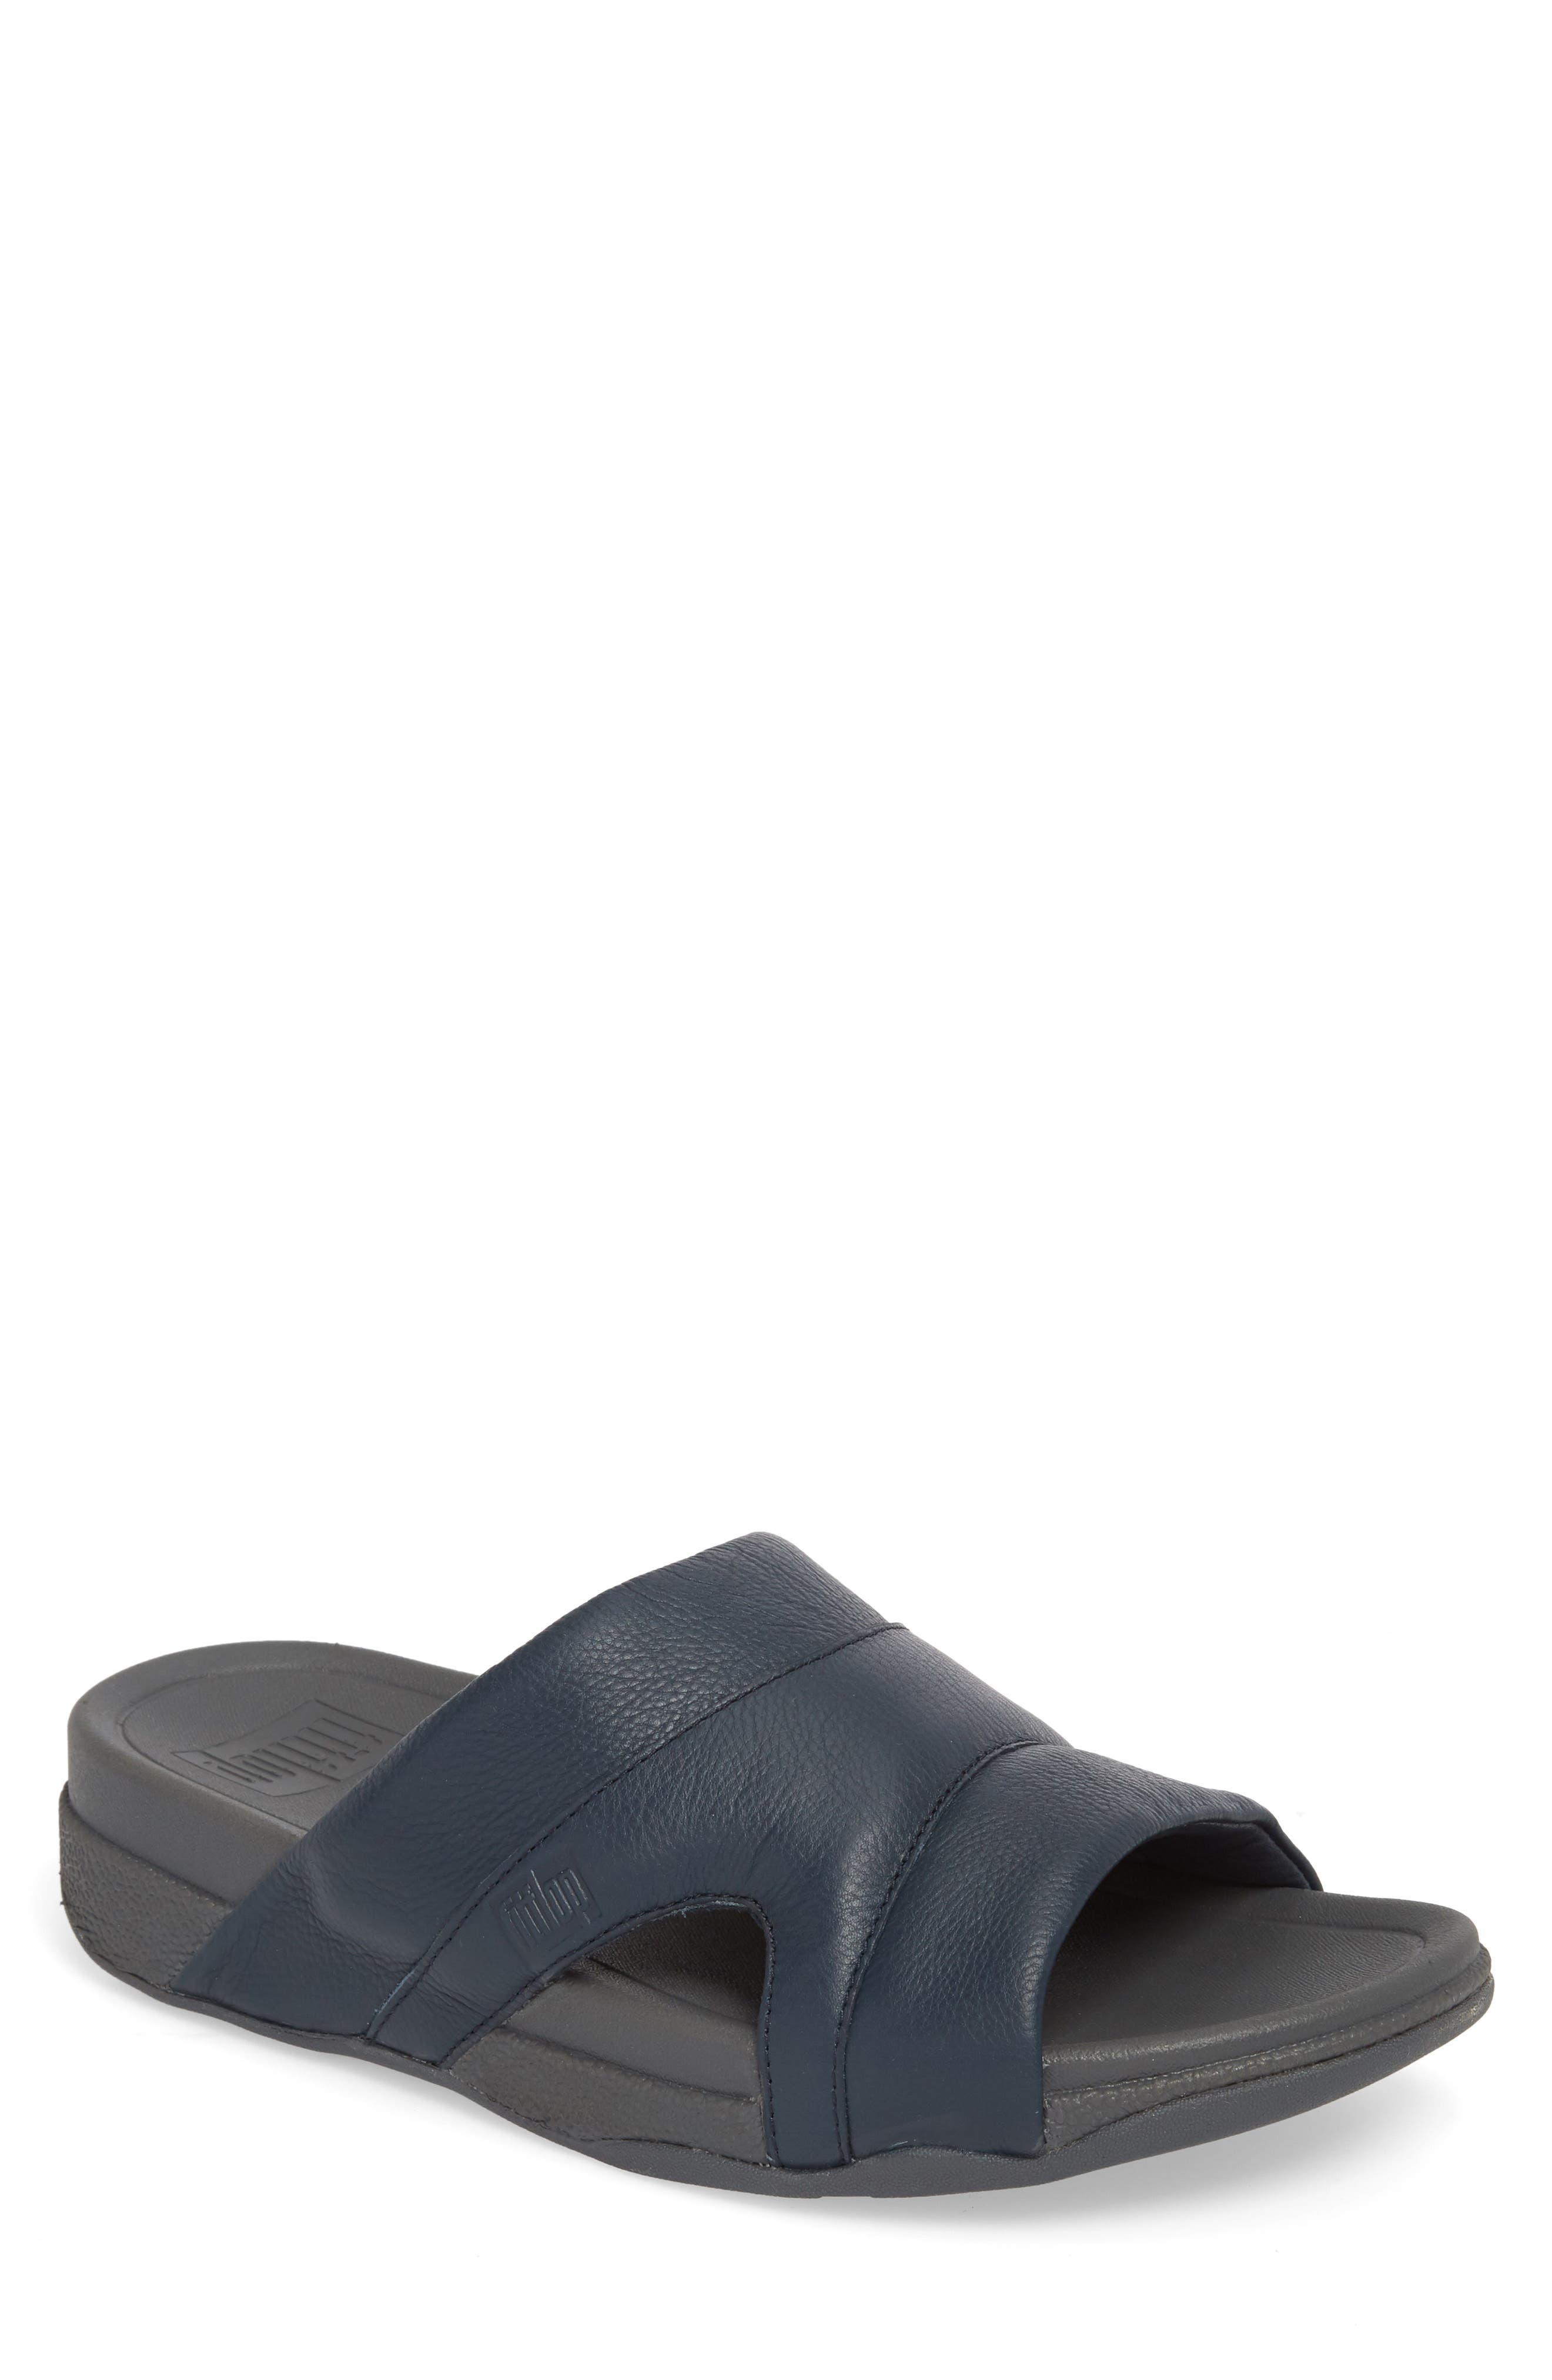 a575649716338c Fitflop Freeway Pool Slide In Super Navy